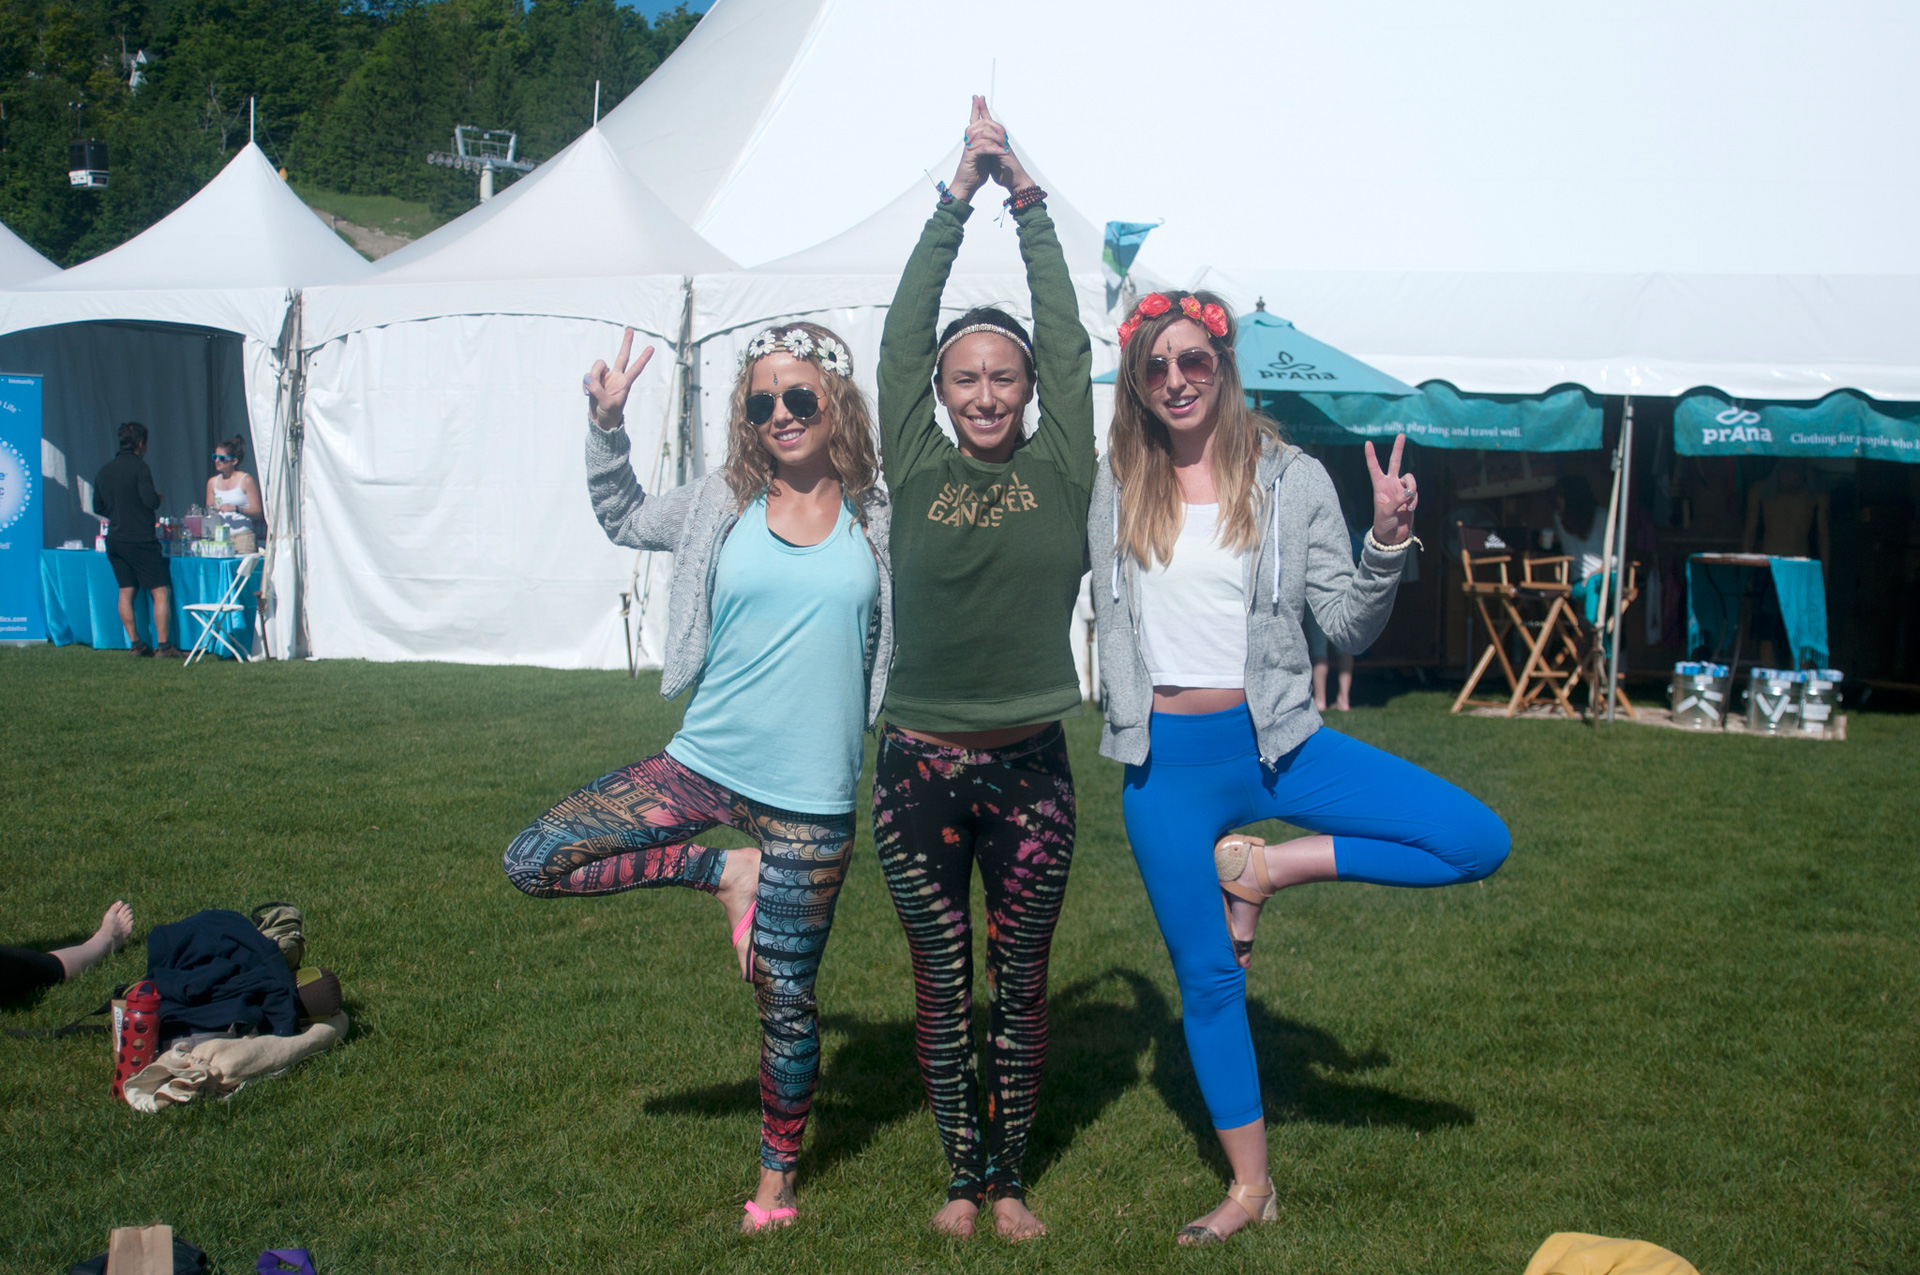 Check out the latest trends in yoga wear -- straight from Wanderlust Yoga Festival!